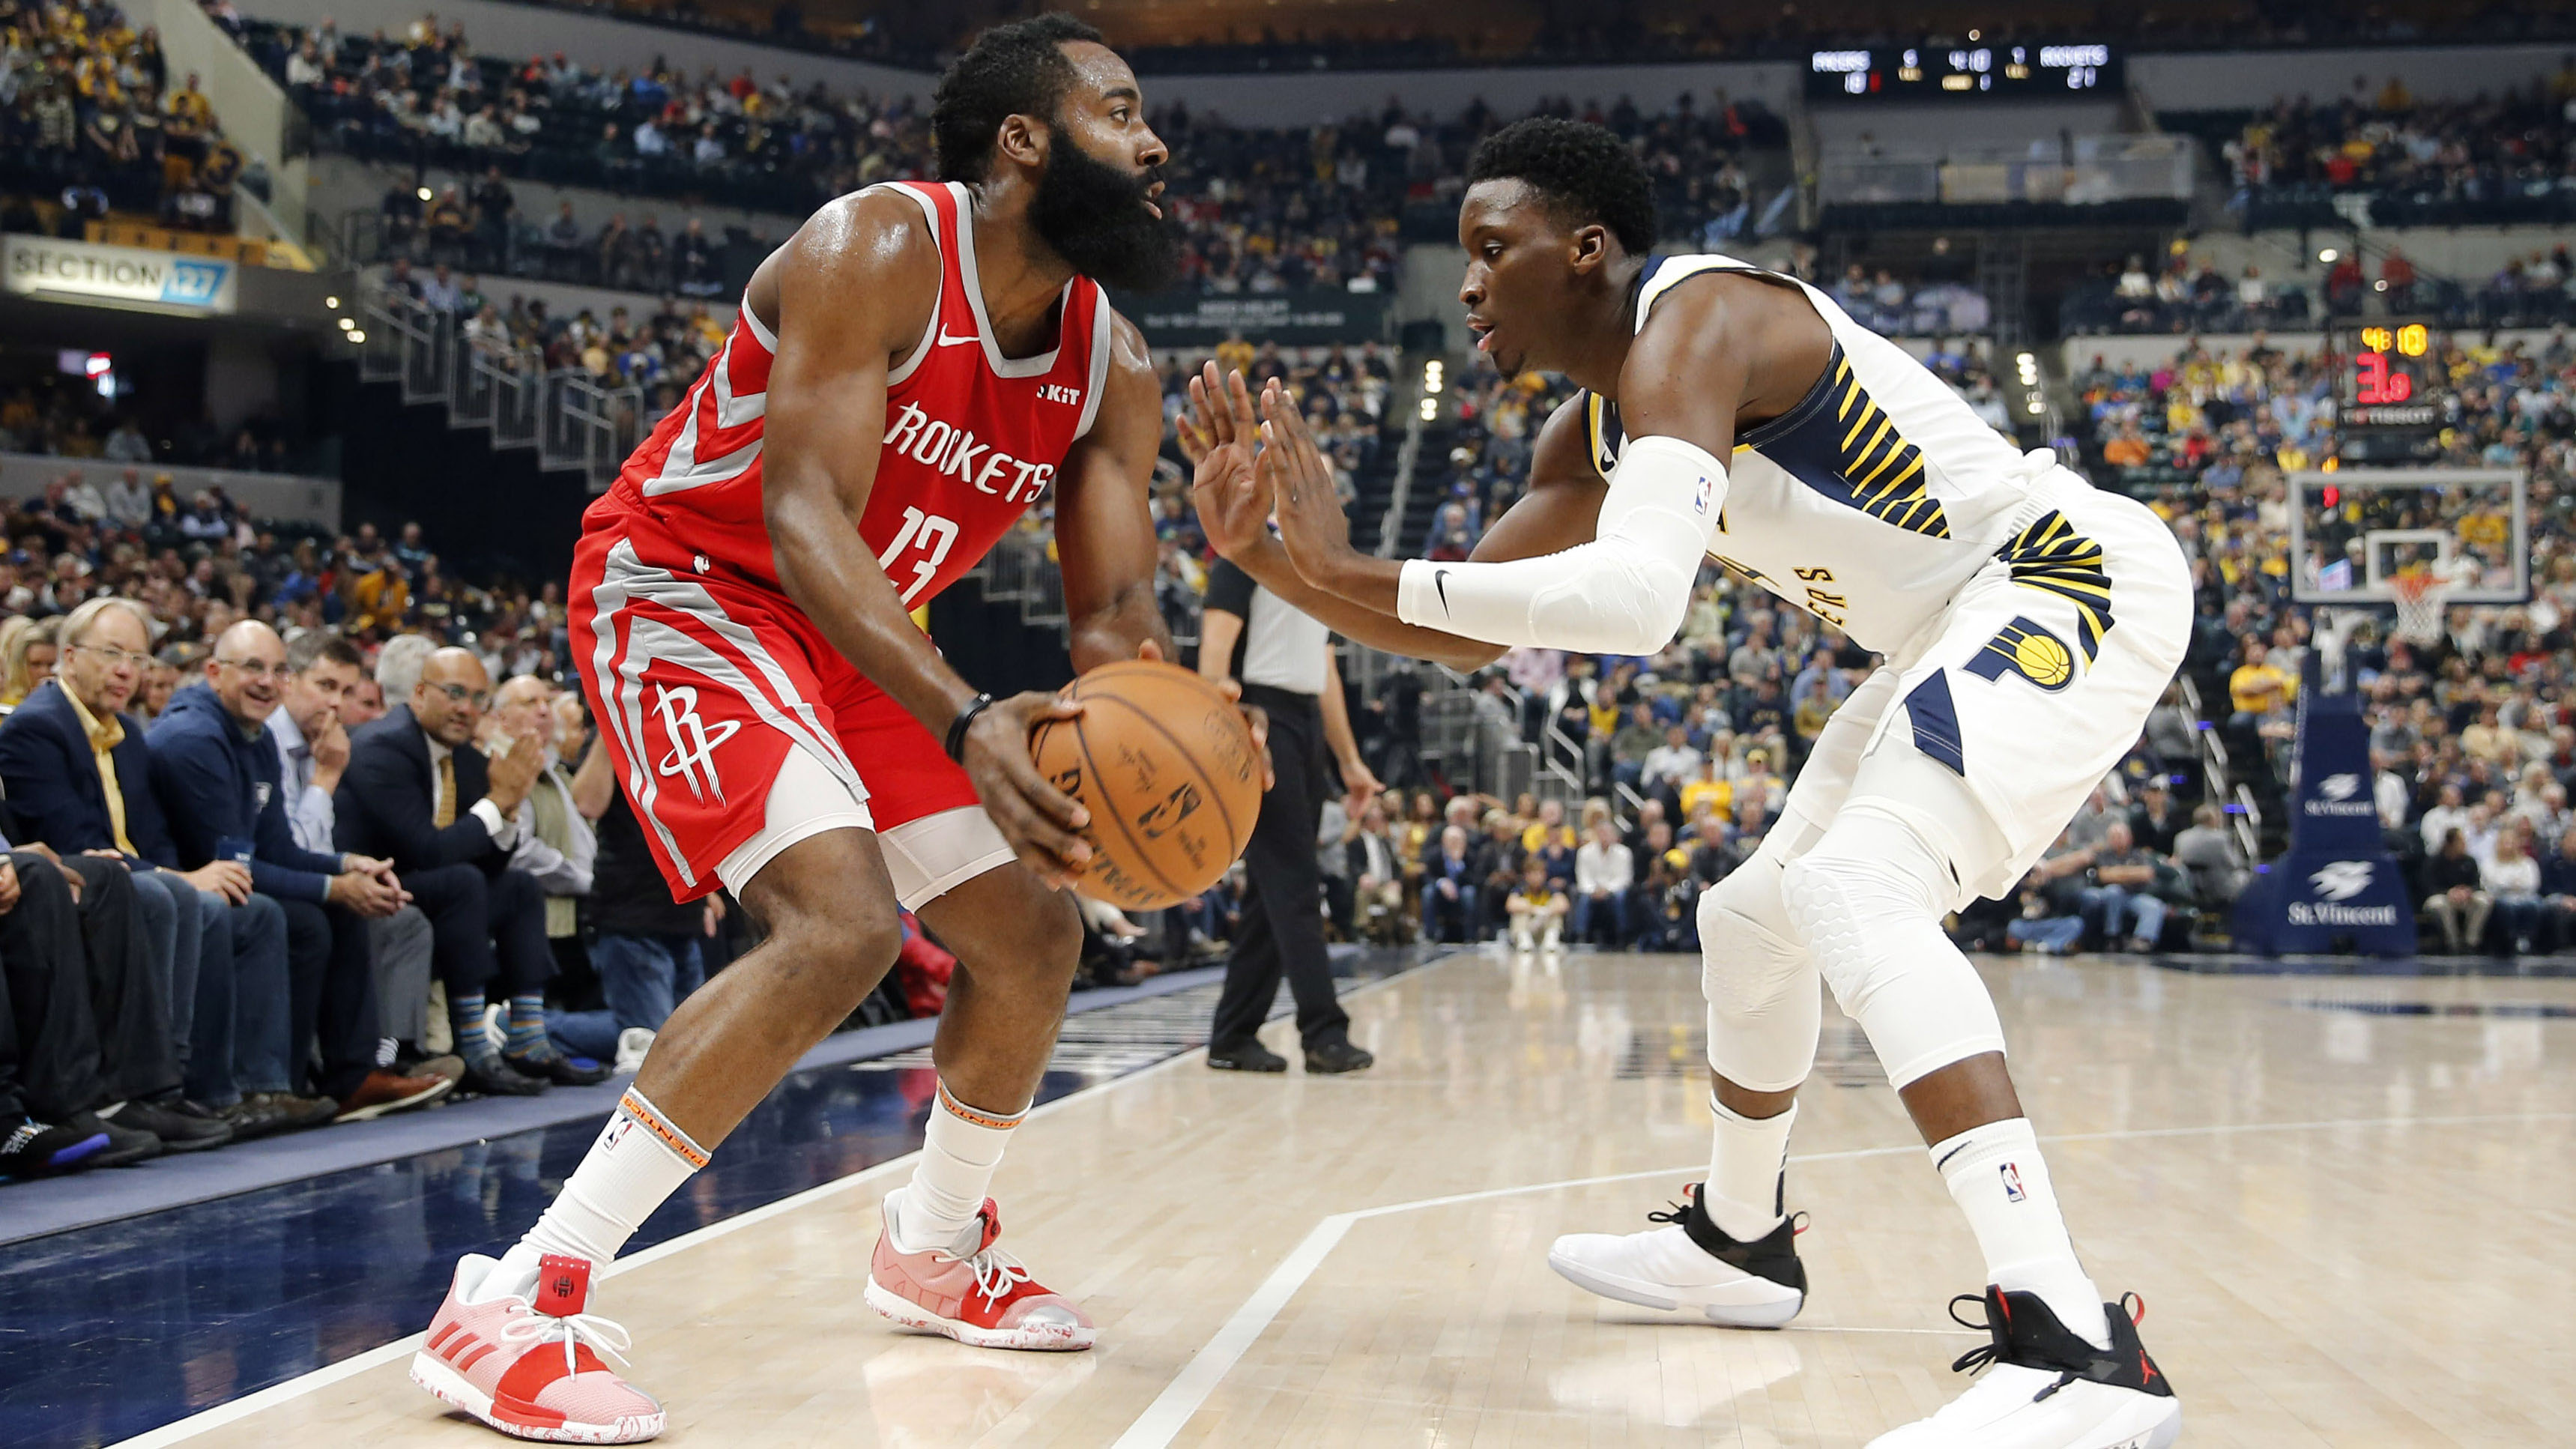 GAME RECAP: Rockets 98, Pacers 94